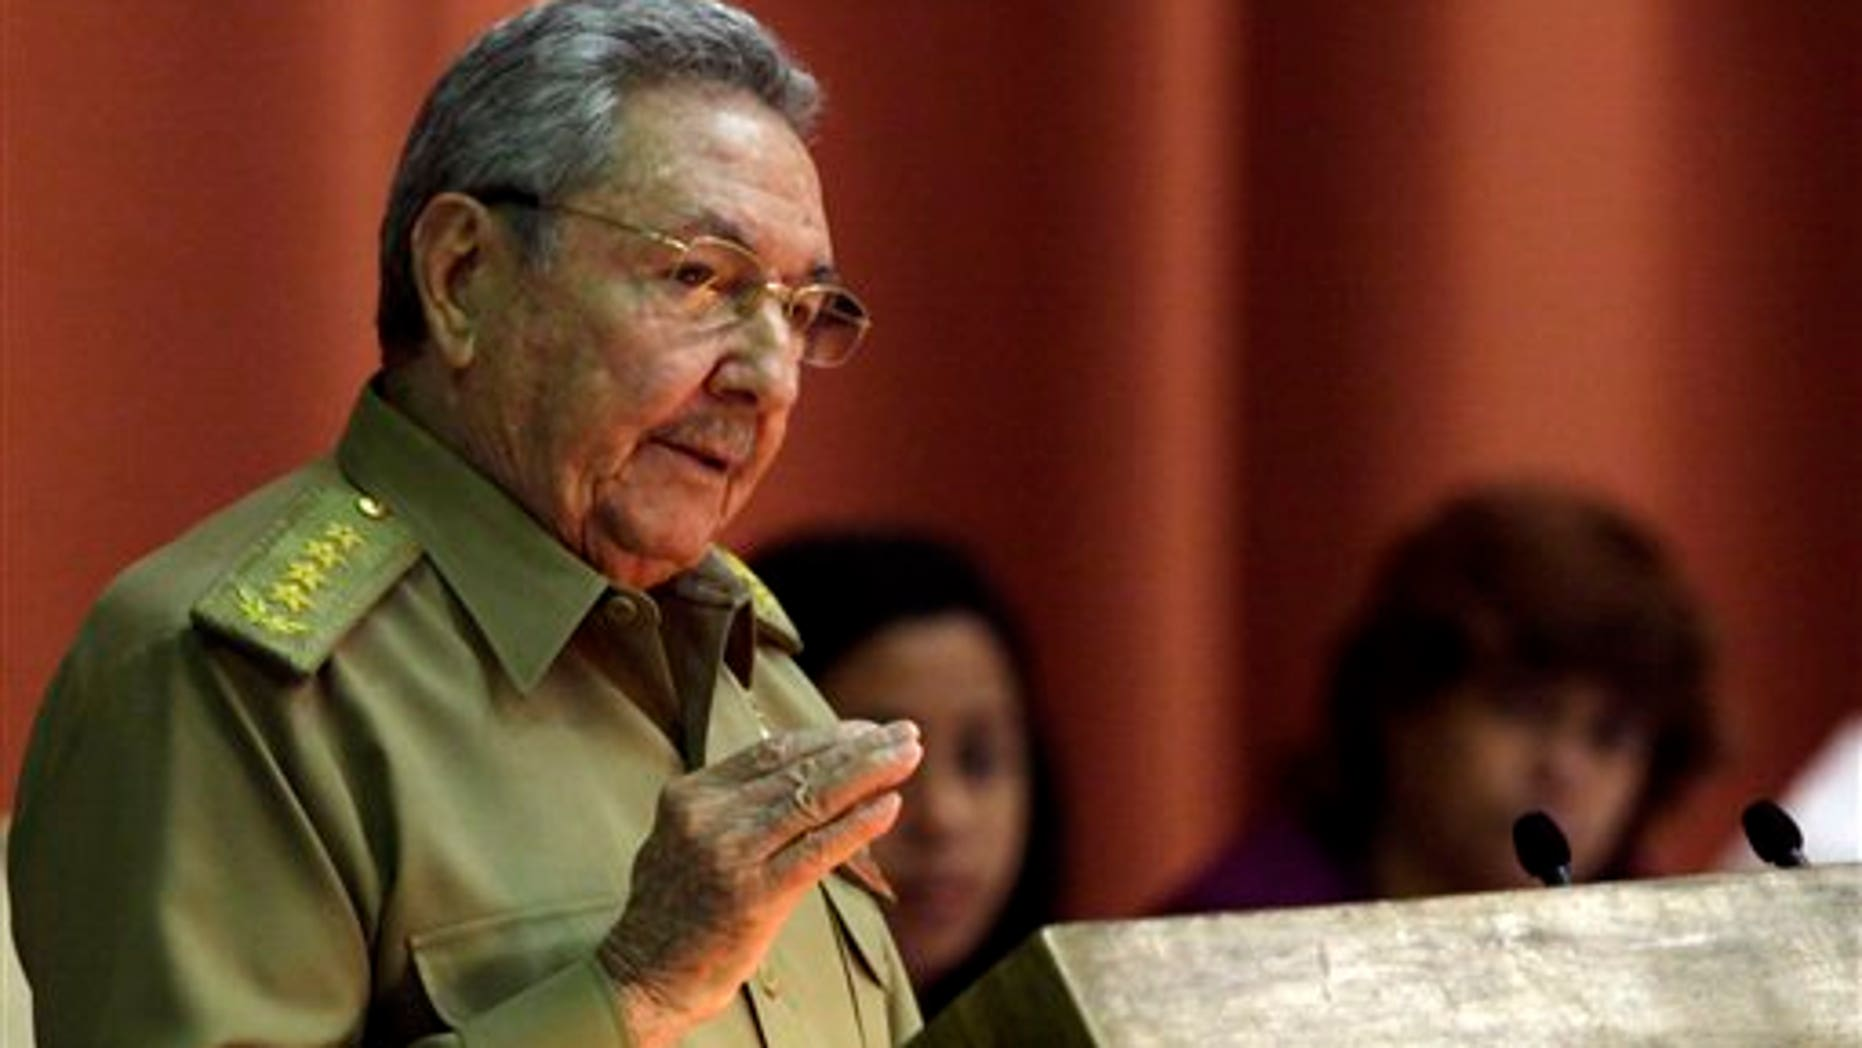 Cuba's President Raul Castro at the National Assembly in Havana, Cuba, Saturday, Dec. 21, 2013